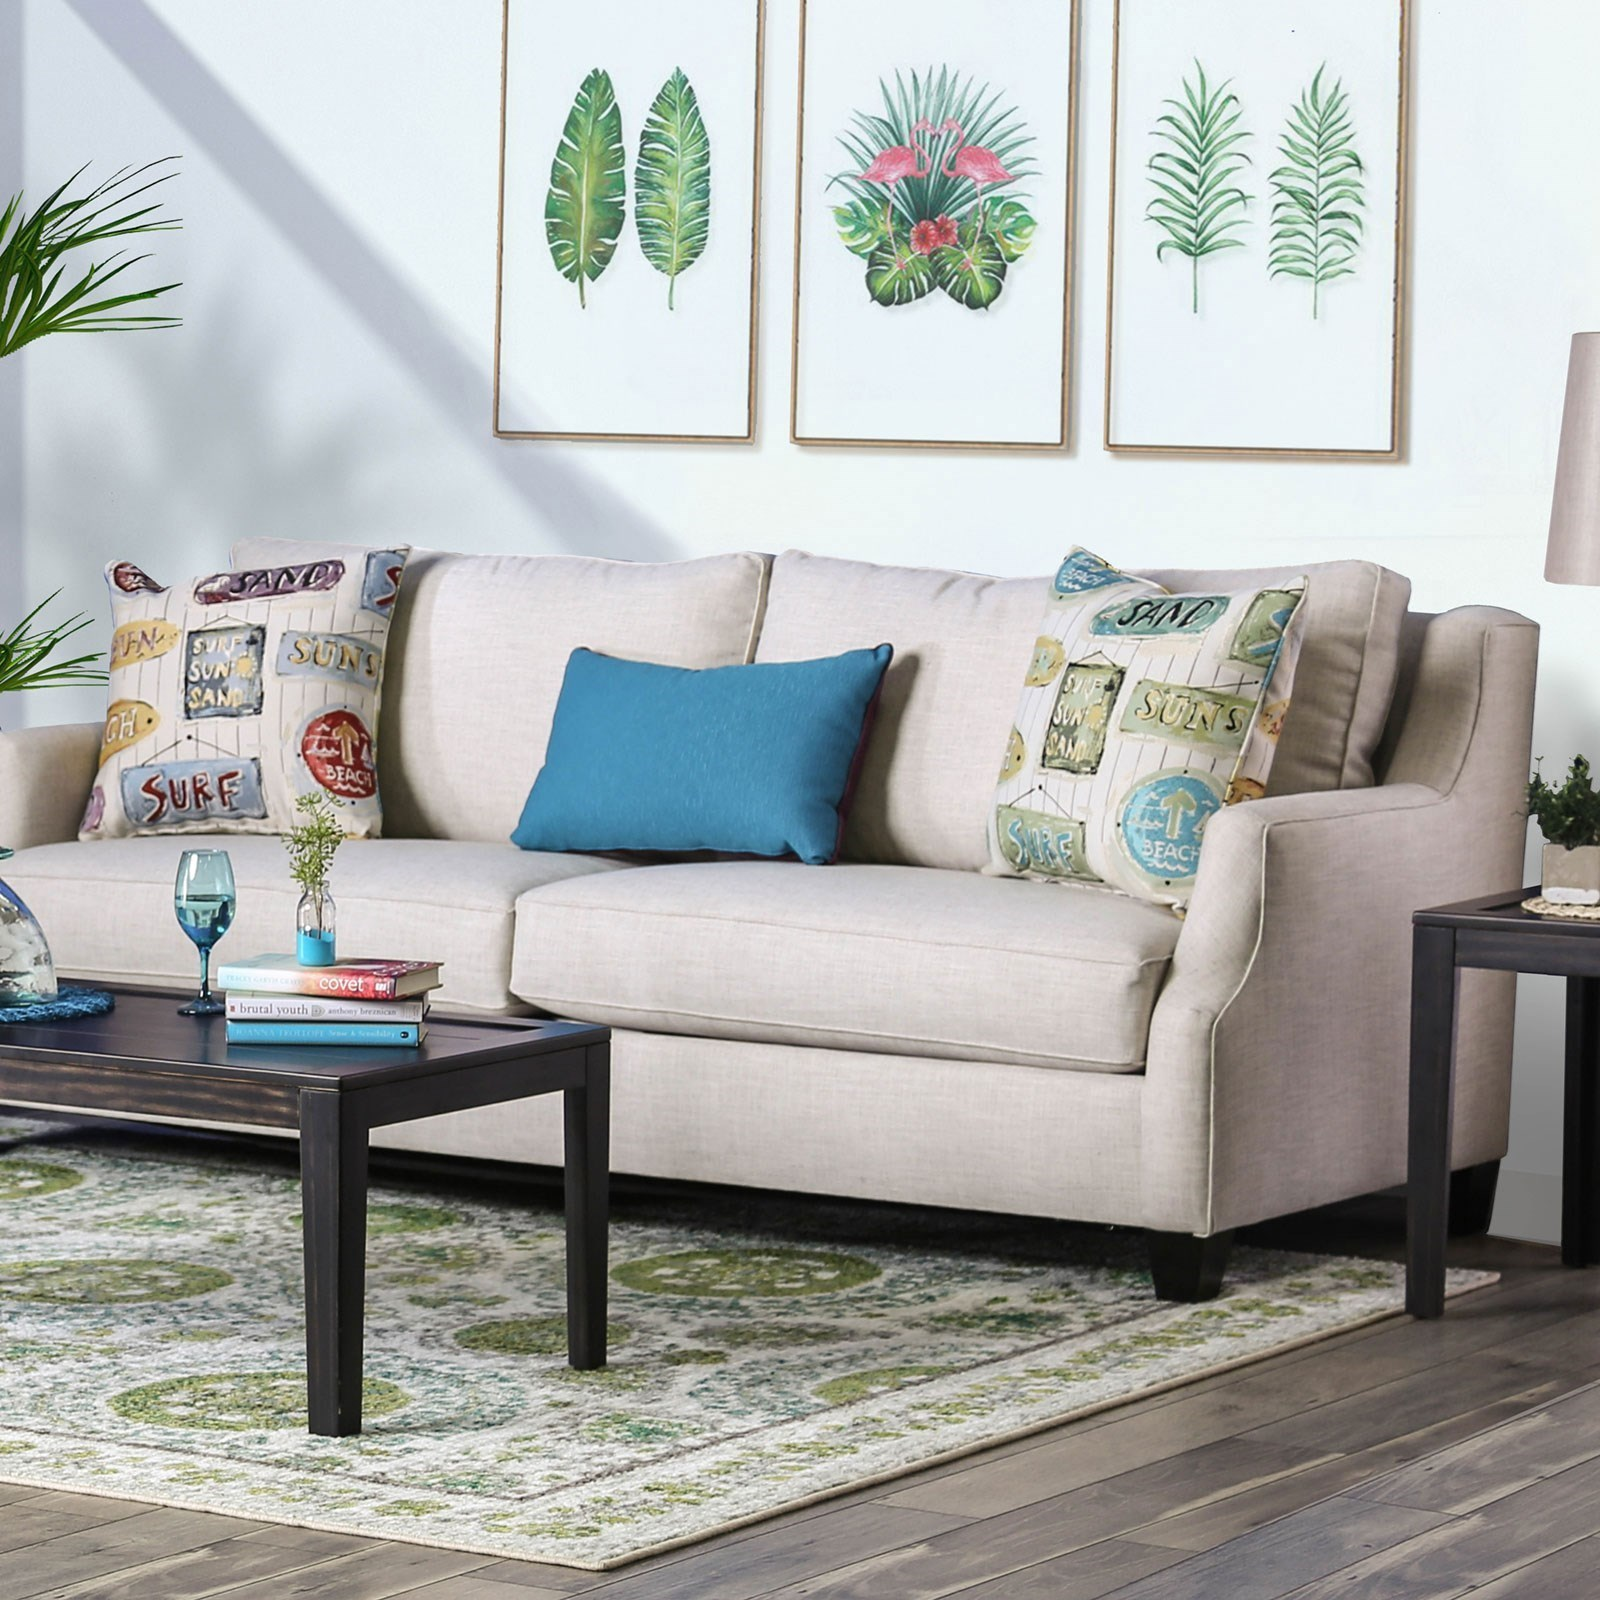 Dasia Contemporary Sofa with Exposed Wood Legs by Furniture of America at  Rooms for Less